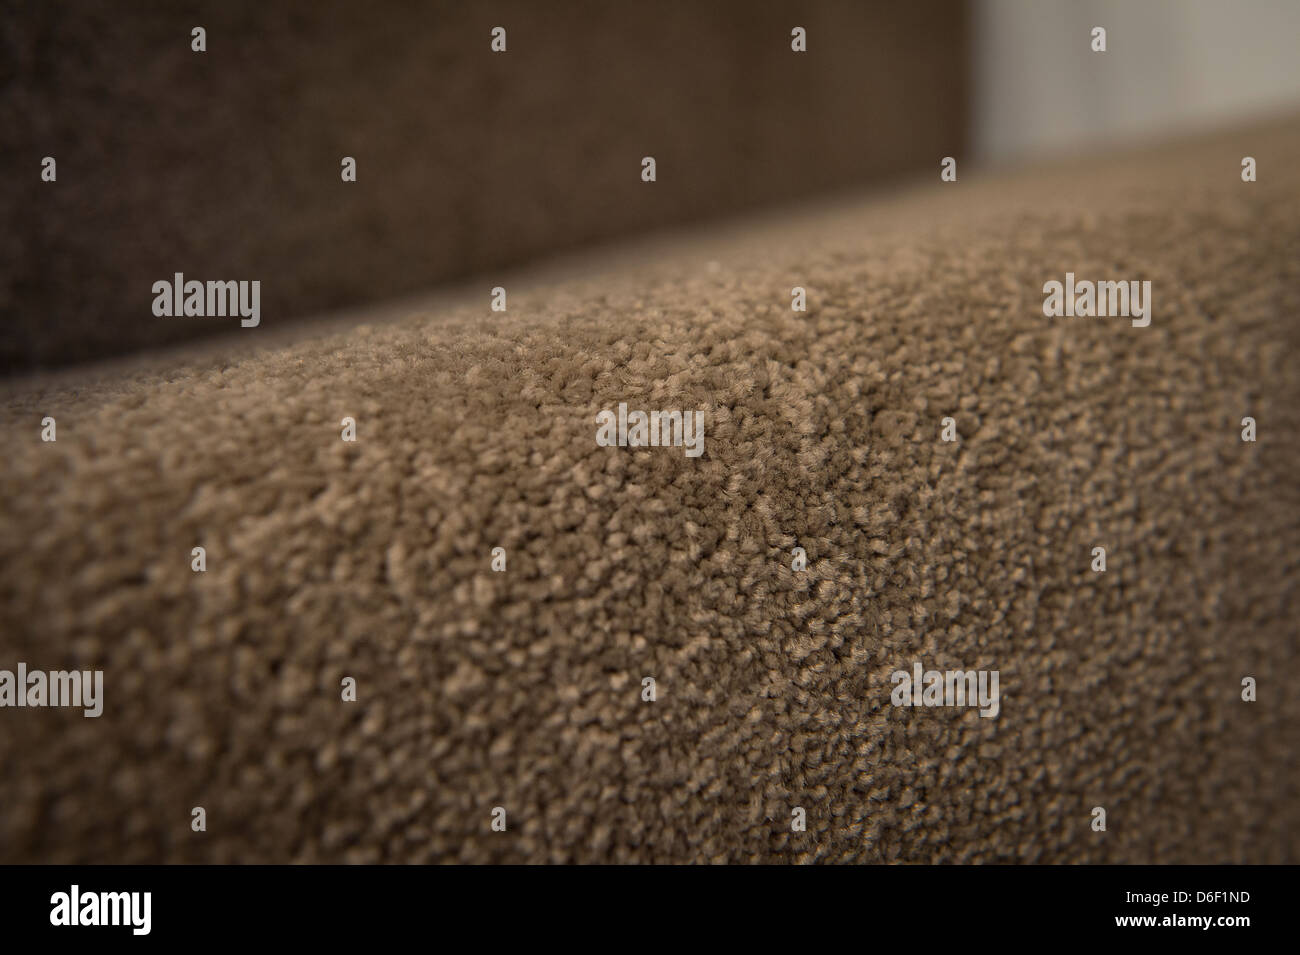 Close up of carpet on a flight of stairs. - Stock Image